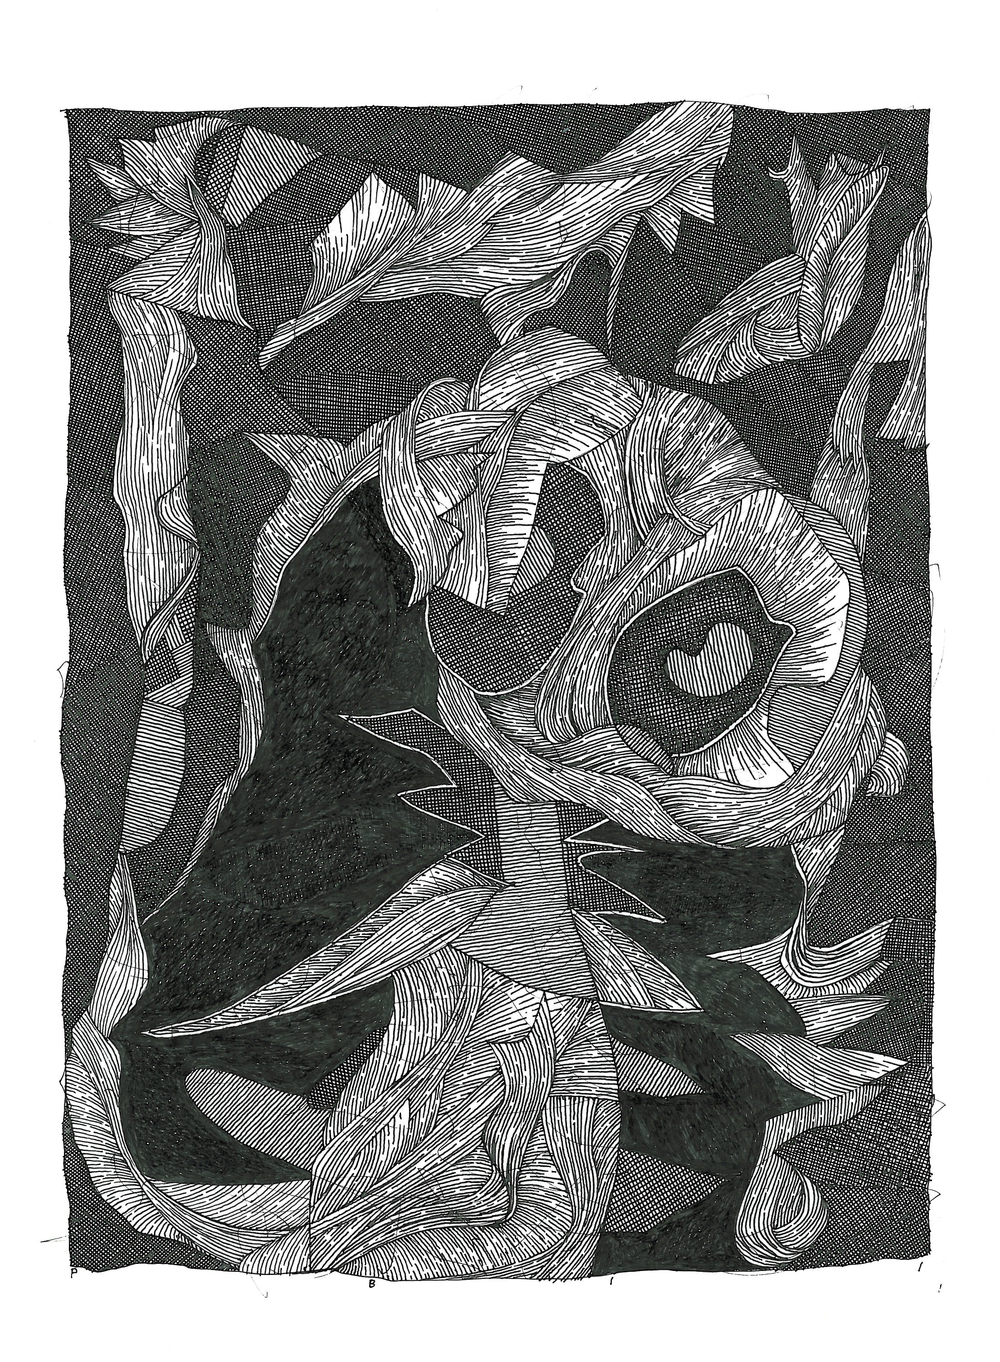 "Pen and Ink - 6.5"" x 9"" - 2011"